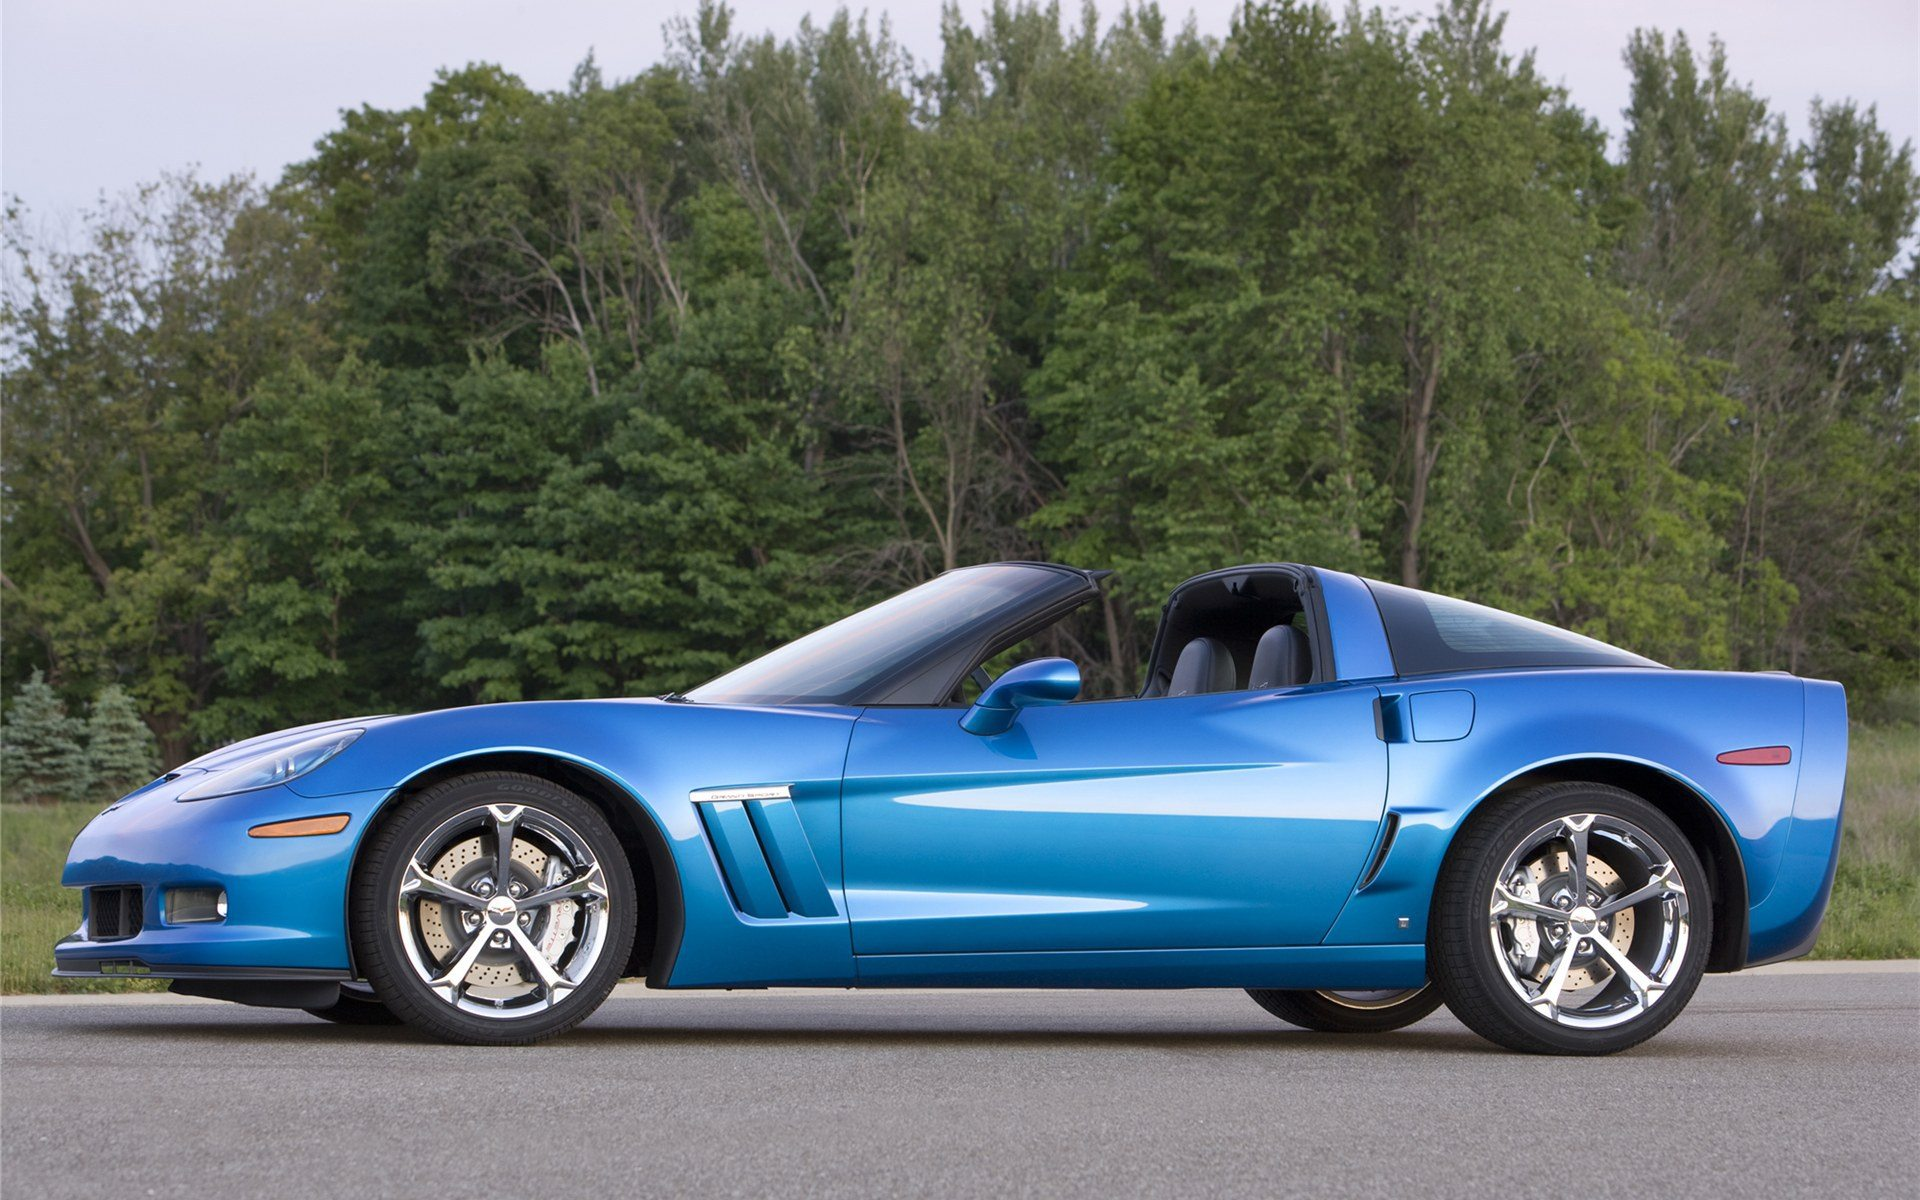 2011 c6 corvette image gallery pictures. Black Bedroom Furniture Sets. Home Design Ideas